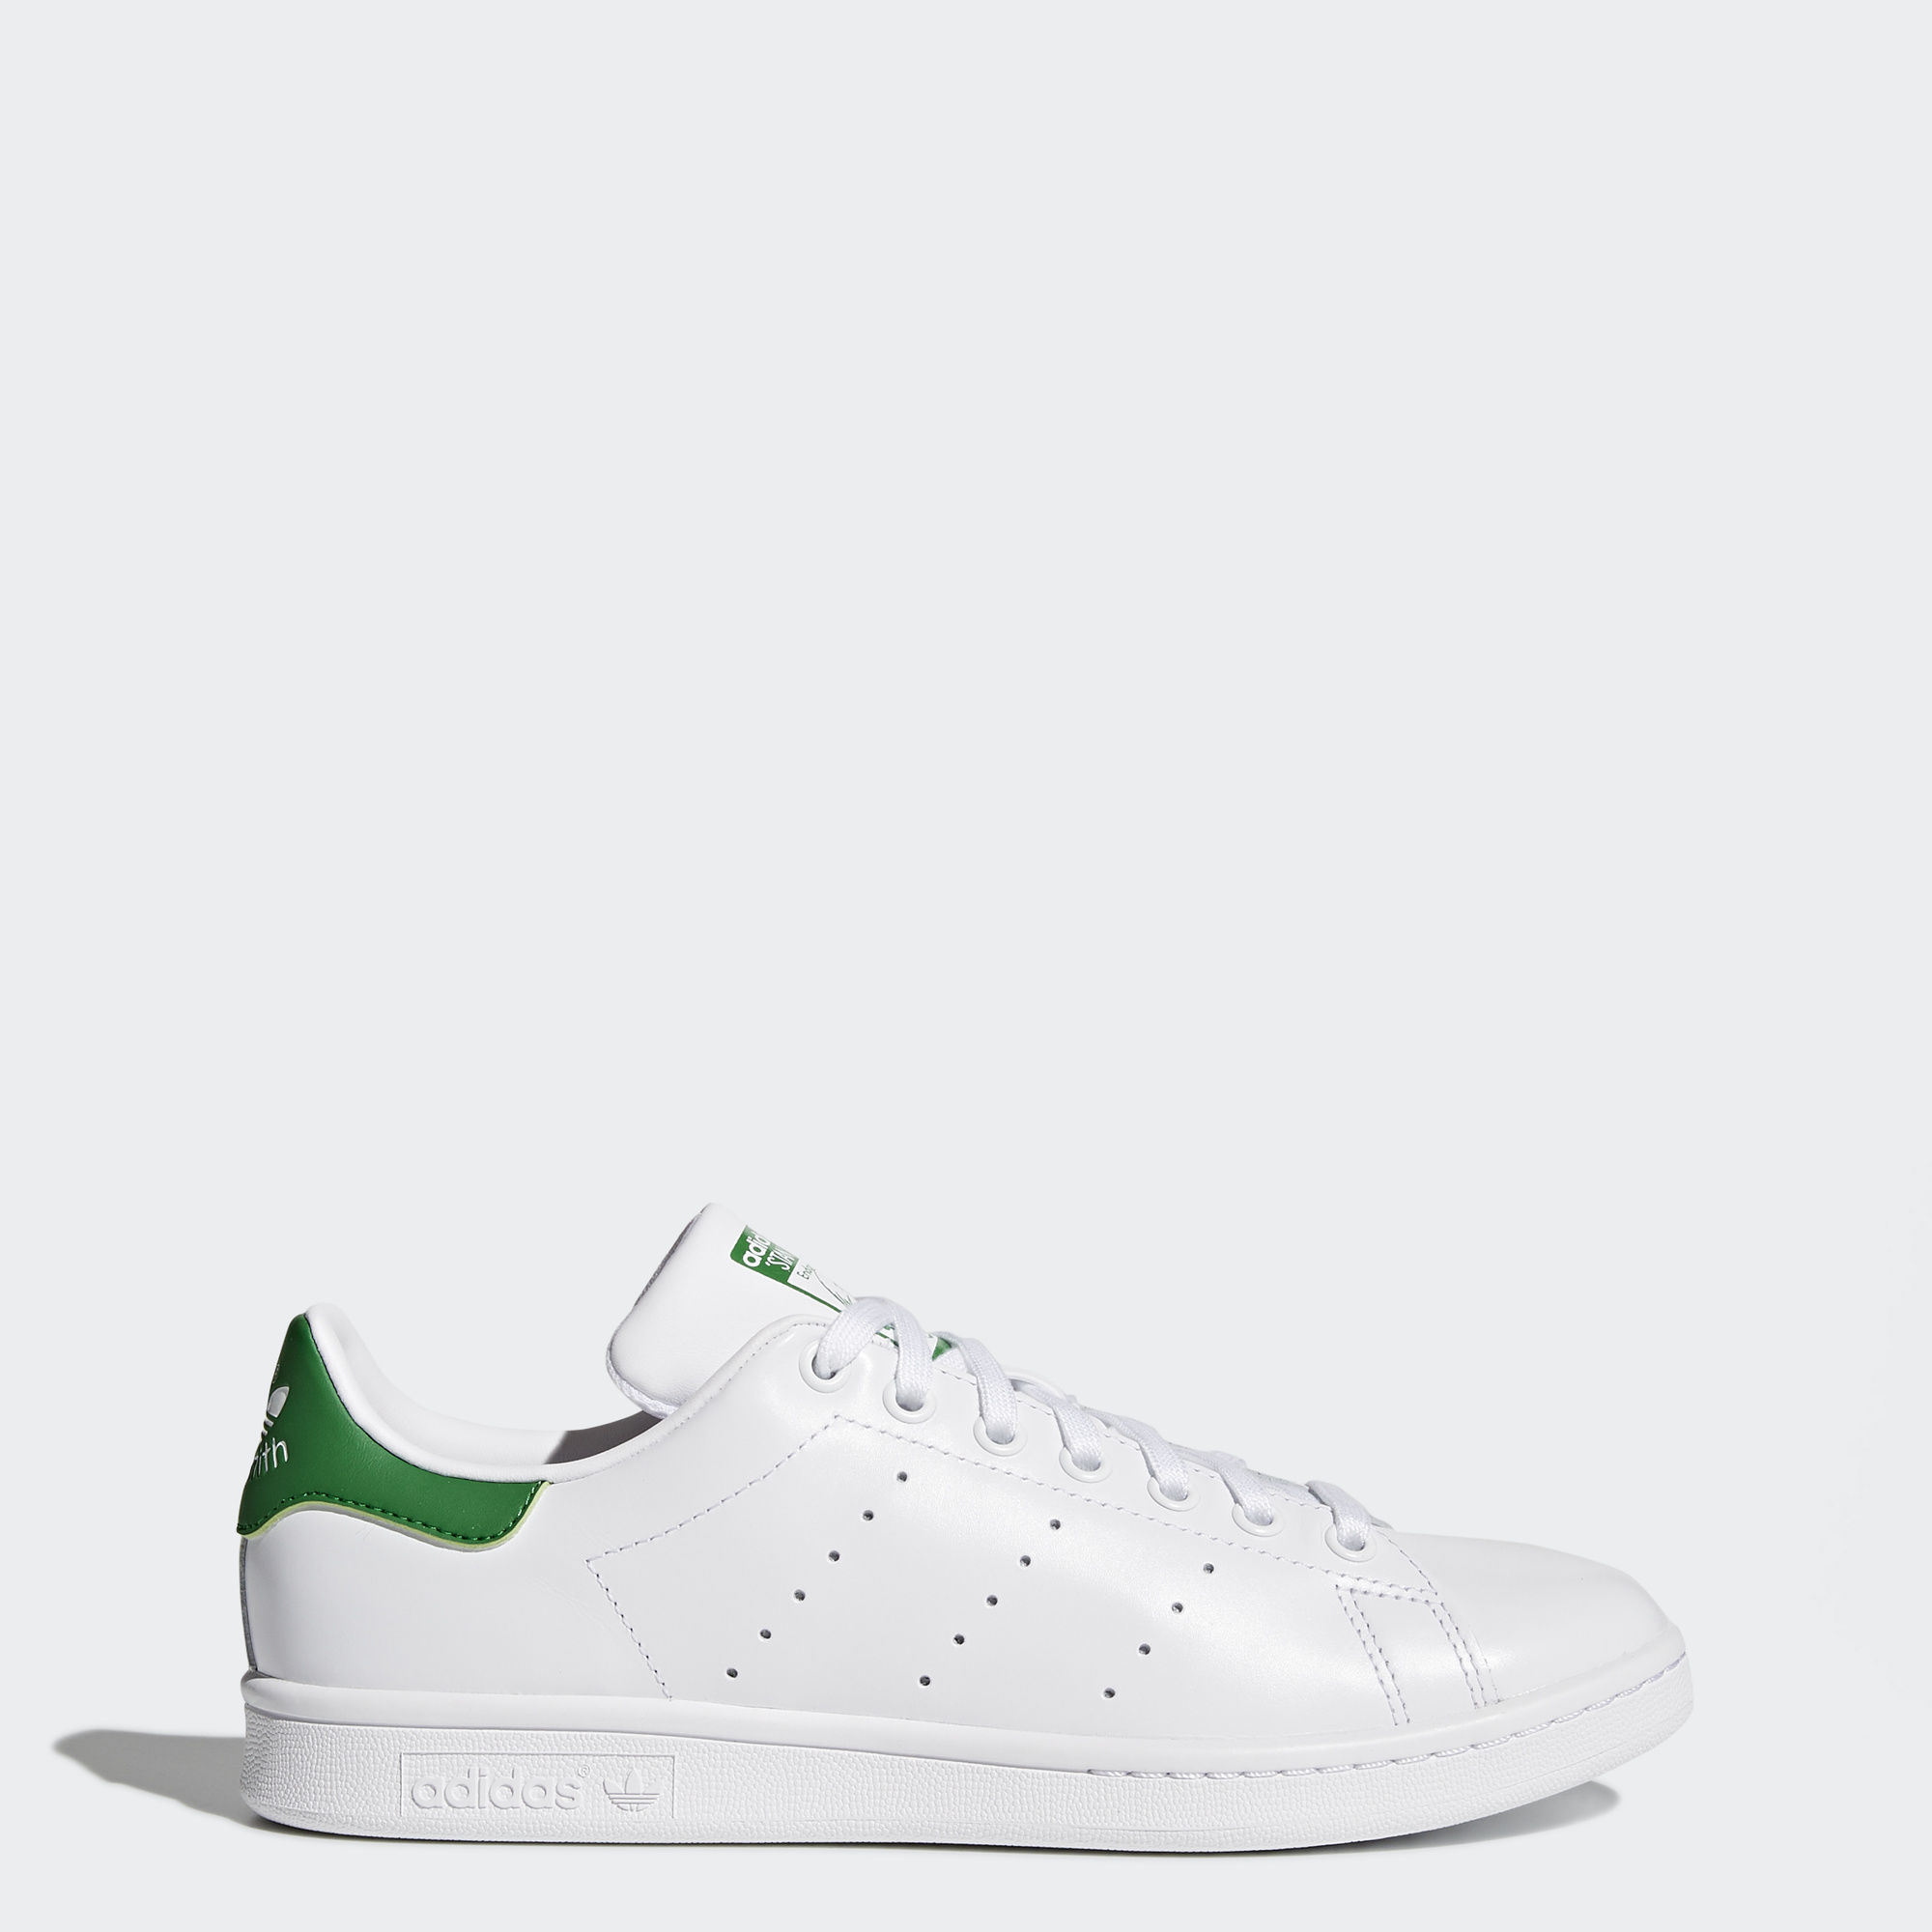 cc795afc6 Stan Smith Adidas   Buy cheap Adidas shoes online - Clvyall.com